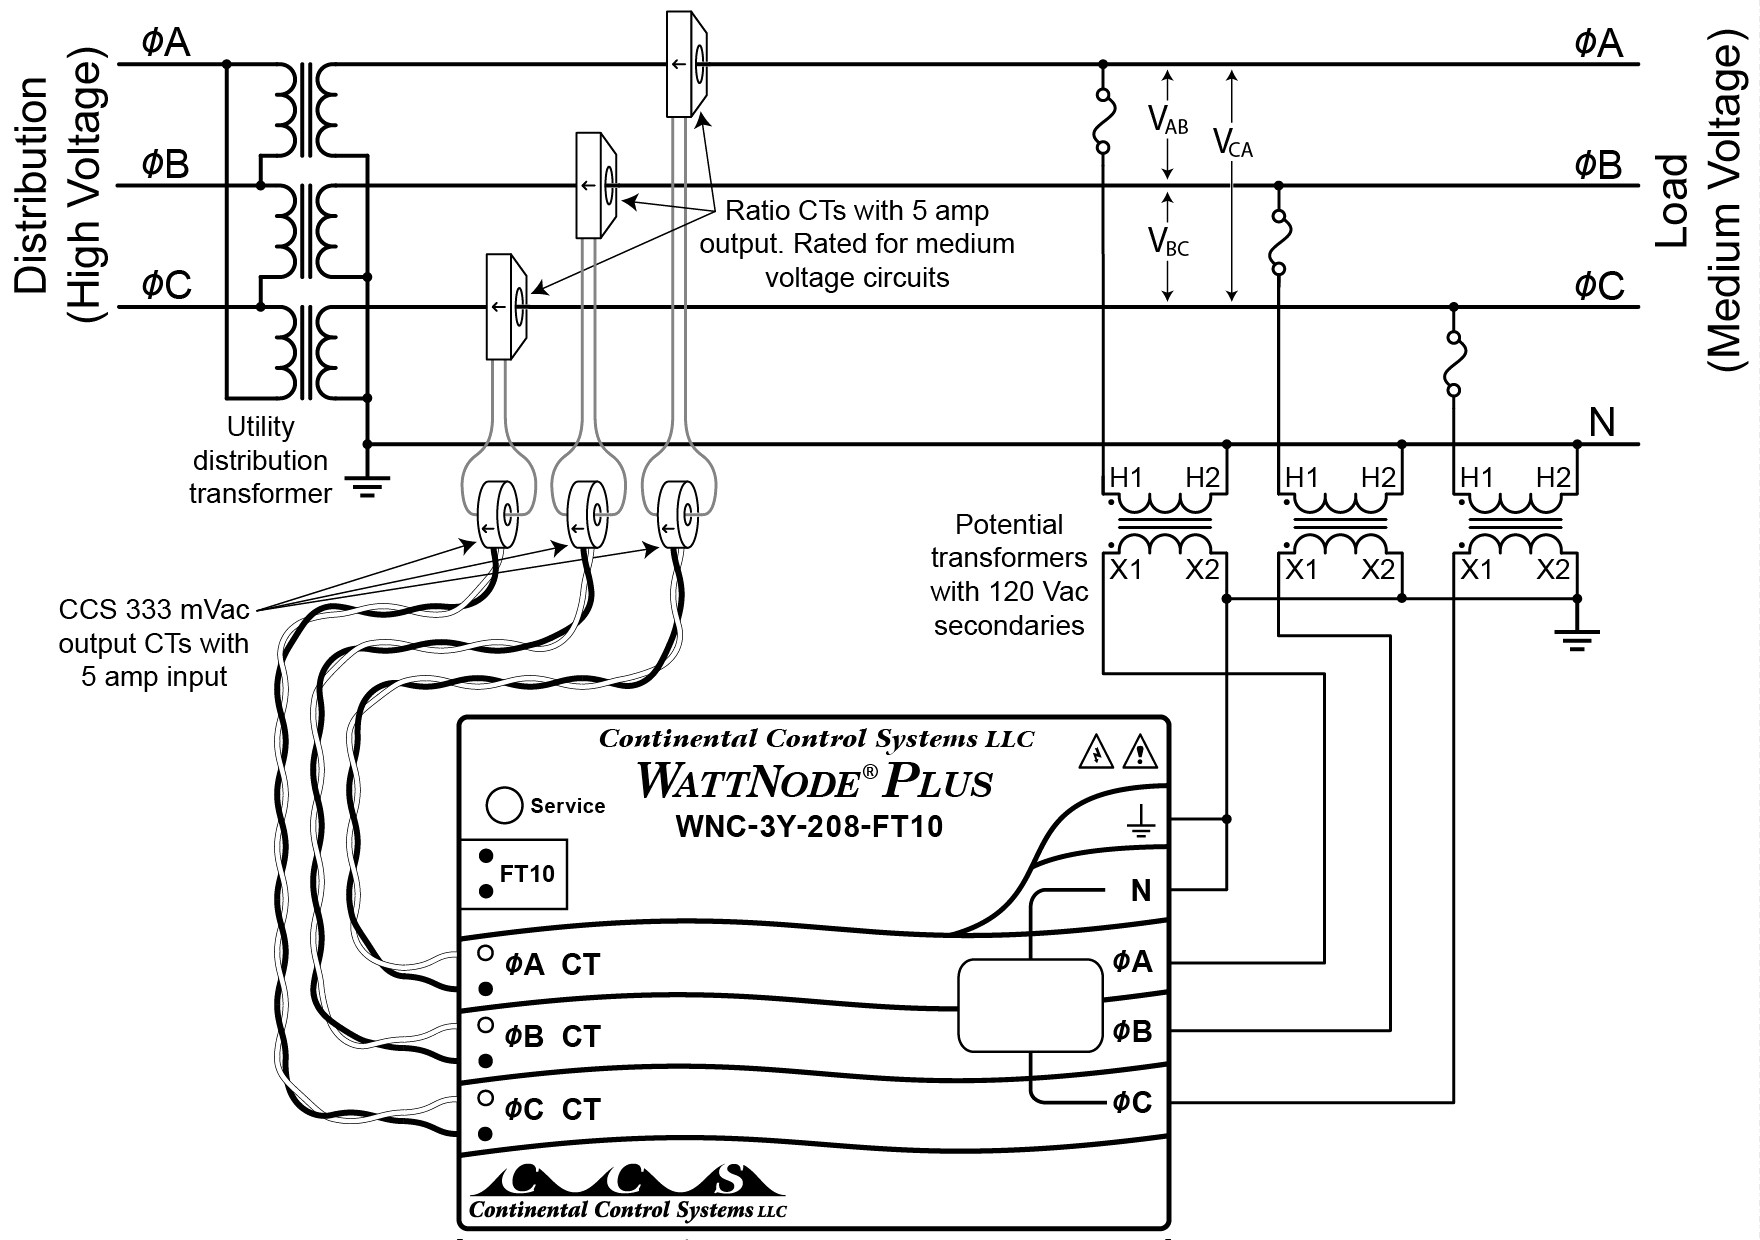 75 Kva Transformer Wiring Diagram | Free Wiring Diagram